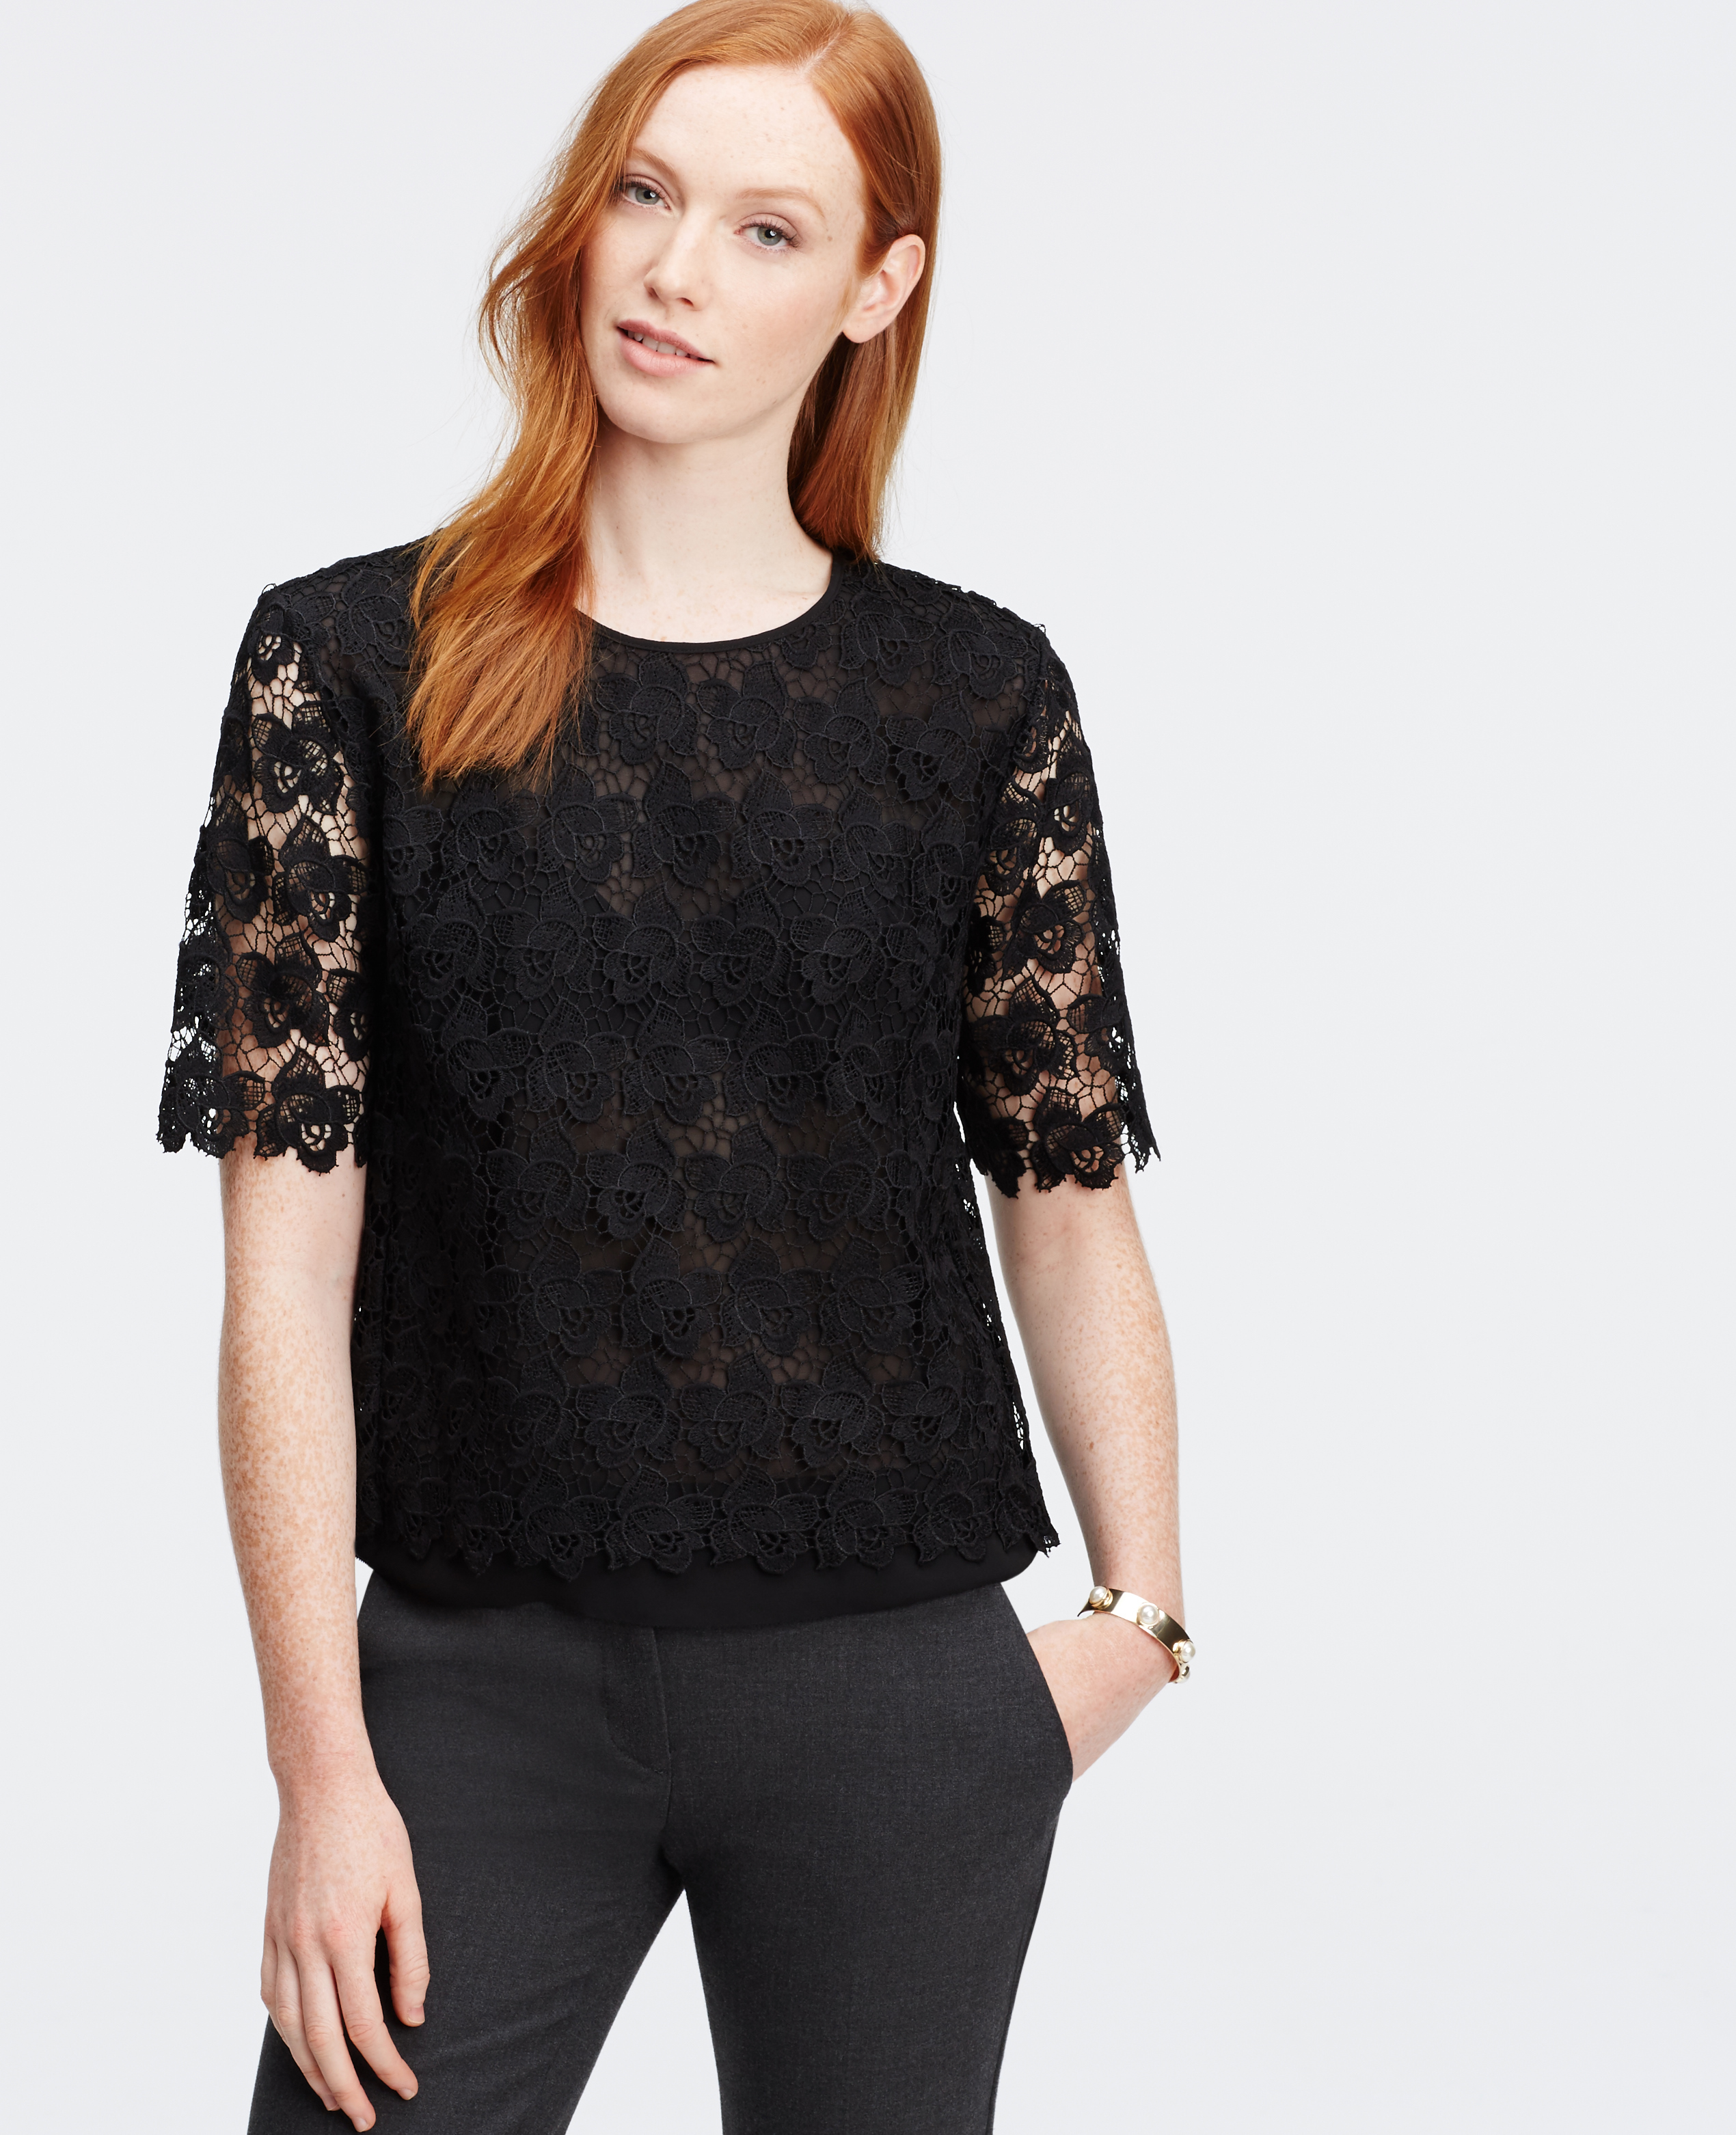 Shop womens long sleeves cheap sale online, you can buy best long sleeve tops, long sleeve t shirts and long sleeve blouses for women at wholesale prices on distrib-u5b2od.ga